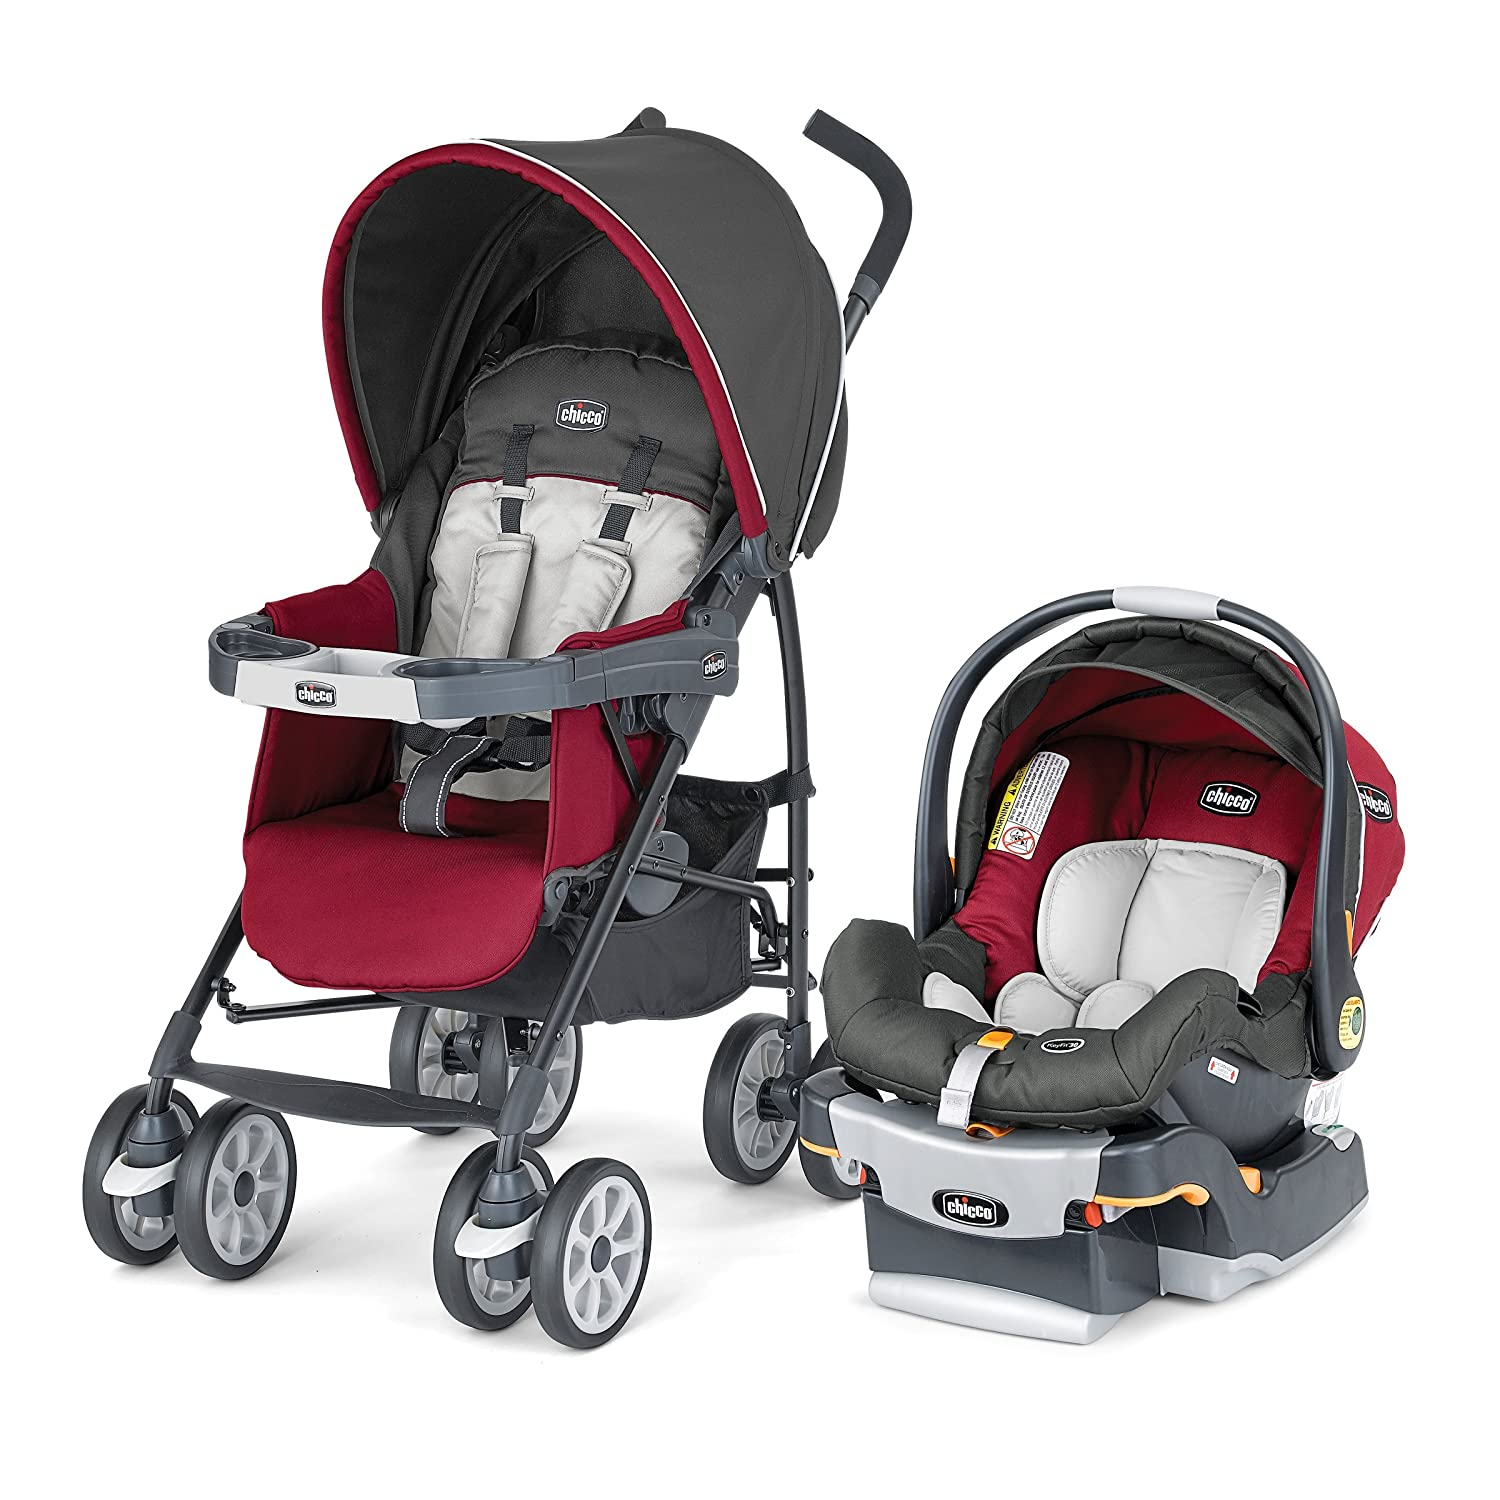 Amazon Chicco Neuvo pact Travel System Granita Infant Car Seat Stroller Travel Systems Baby